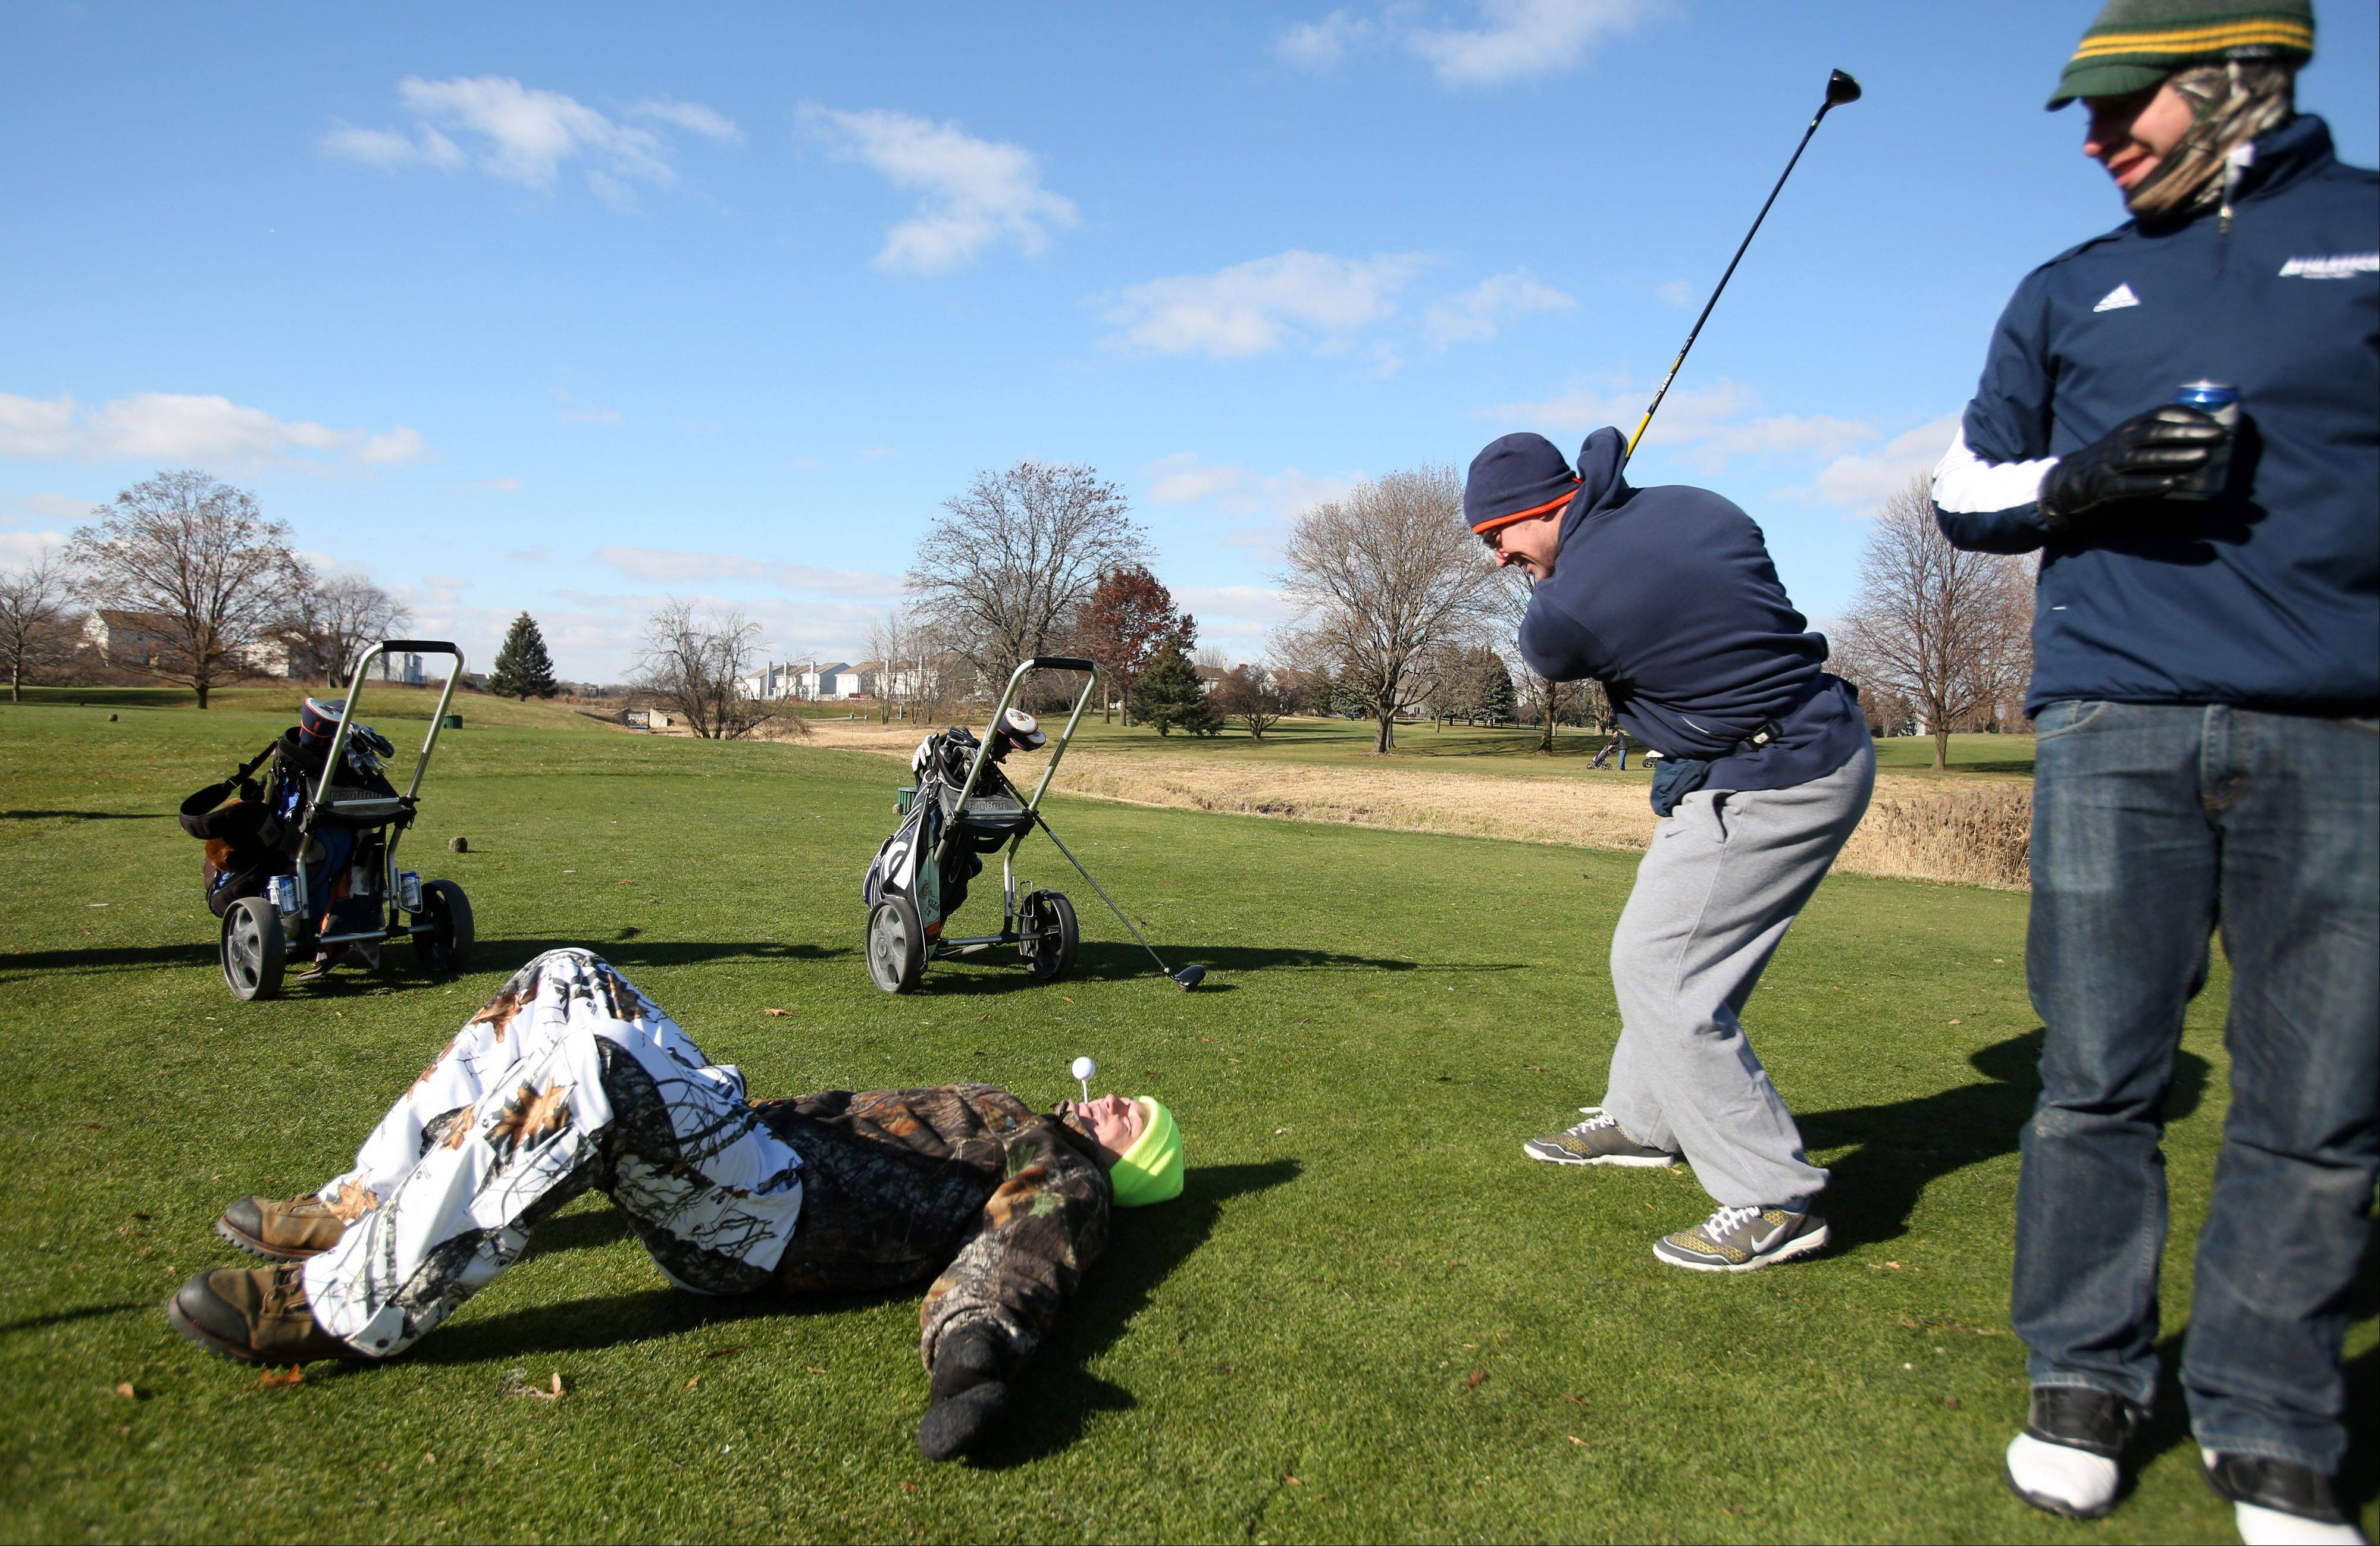 Derek Weber of Joliet lies on the ground as the human tee during the Naperville Park District�s Turkey Shoot golf tournament Saturday at Springbrook Golf Course in Naperville. Zach Pedersen of Joliet practices his backswing while Dan Hamburger of Naperville watches.